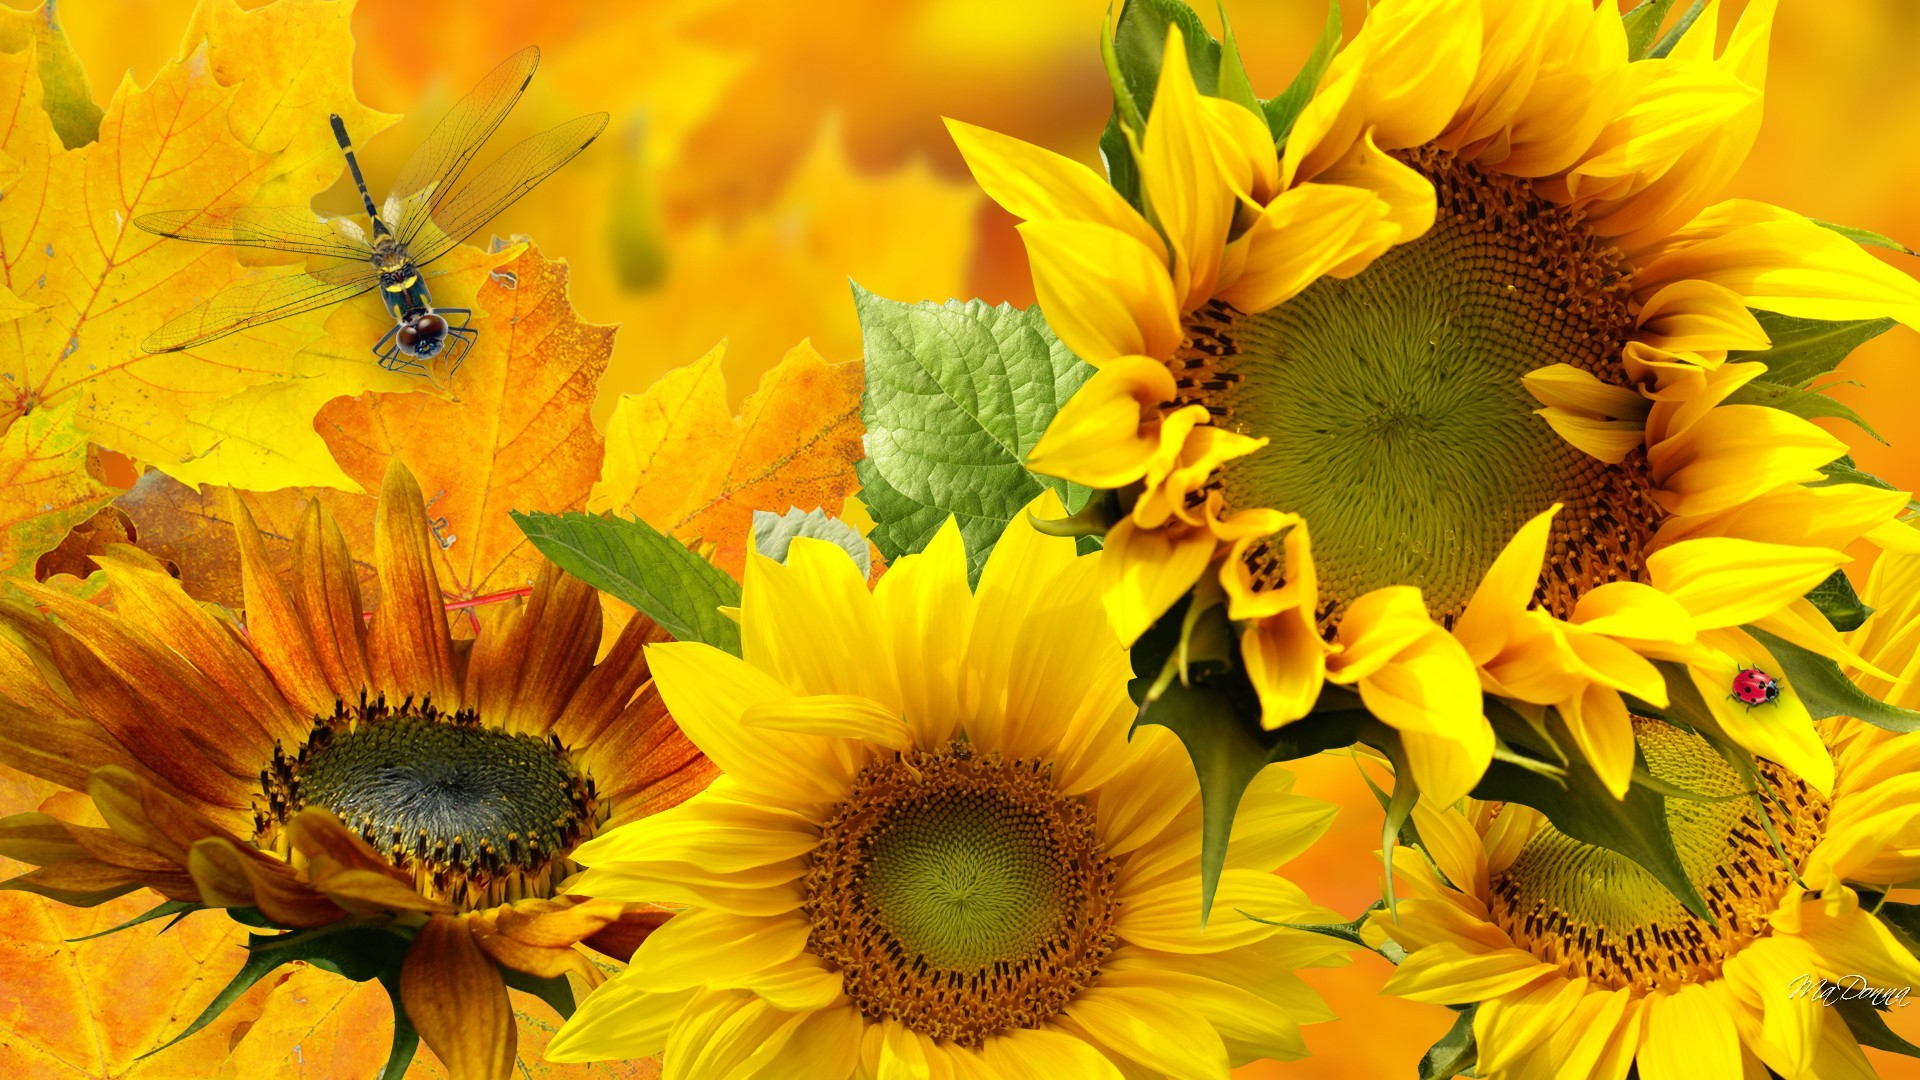 Sunflowers And Dragonfly HD Wallpaper